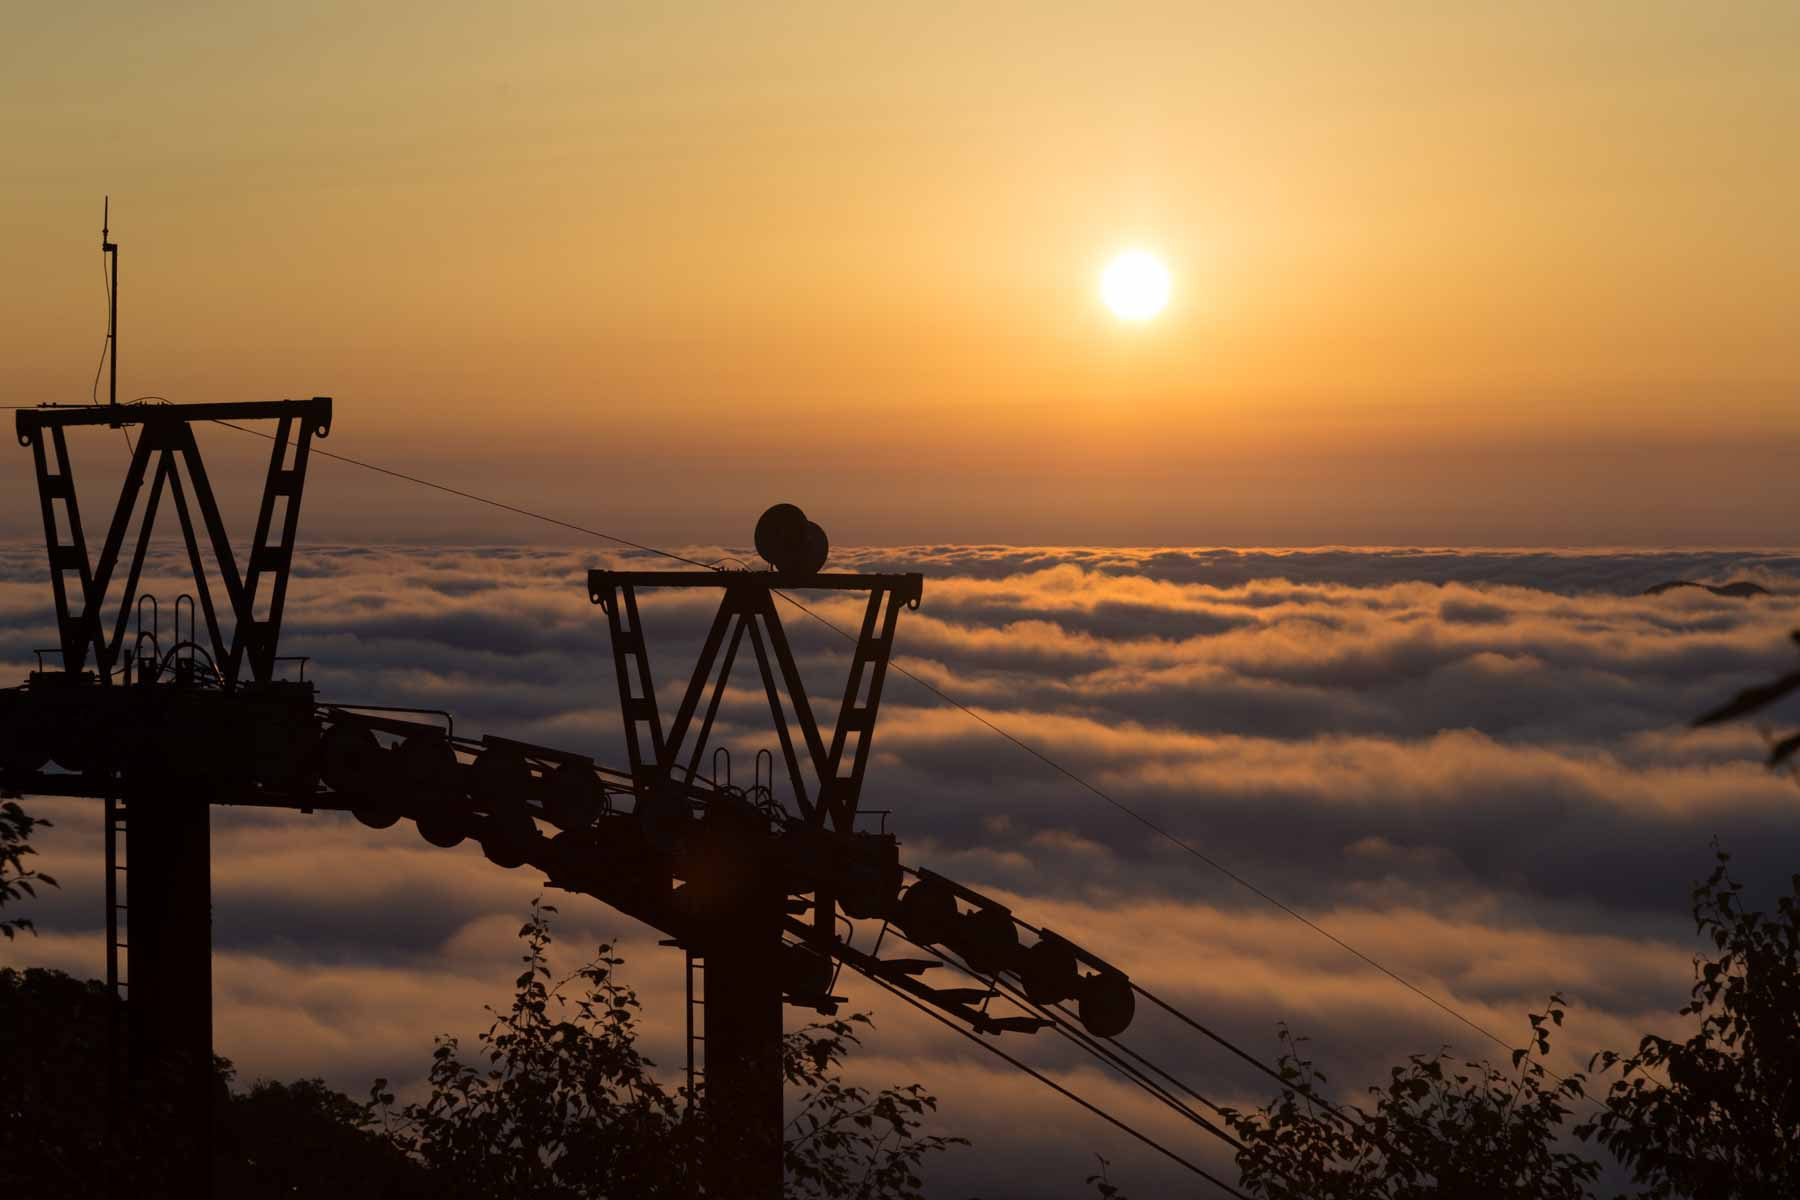 Hokkaido Ski Lift Morning Sunrise Above Clouds JapanWifiBuddy